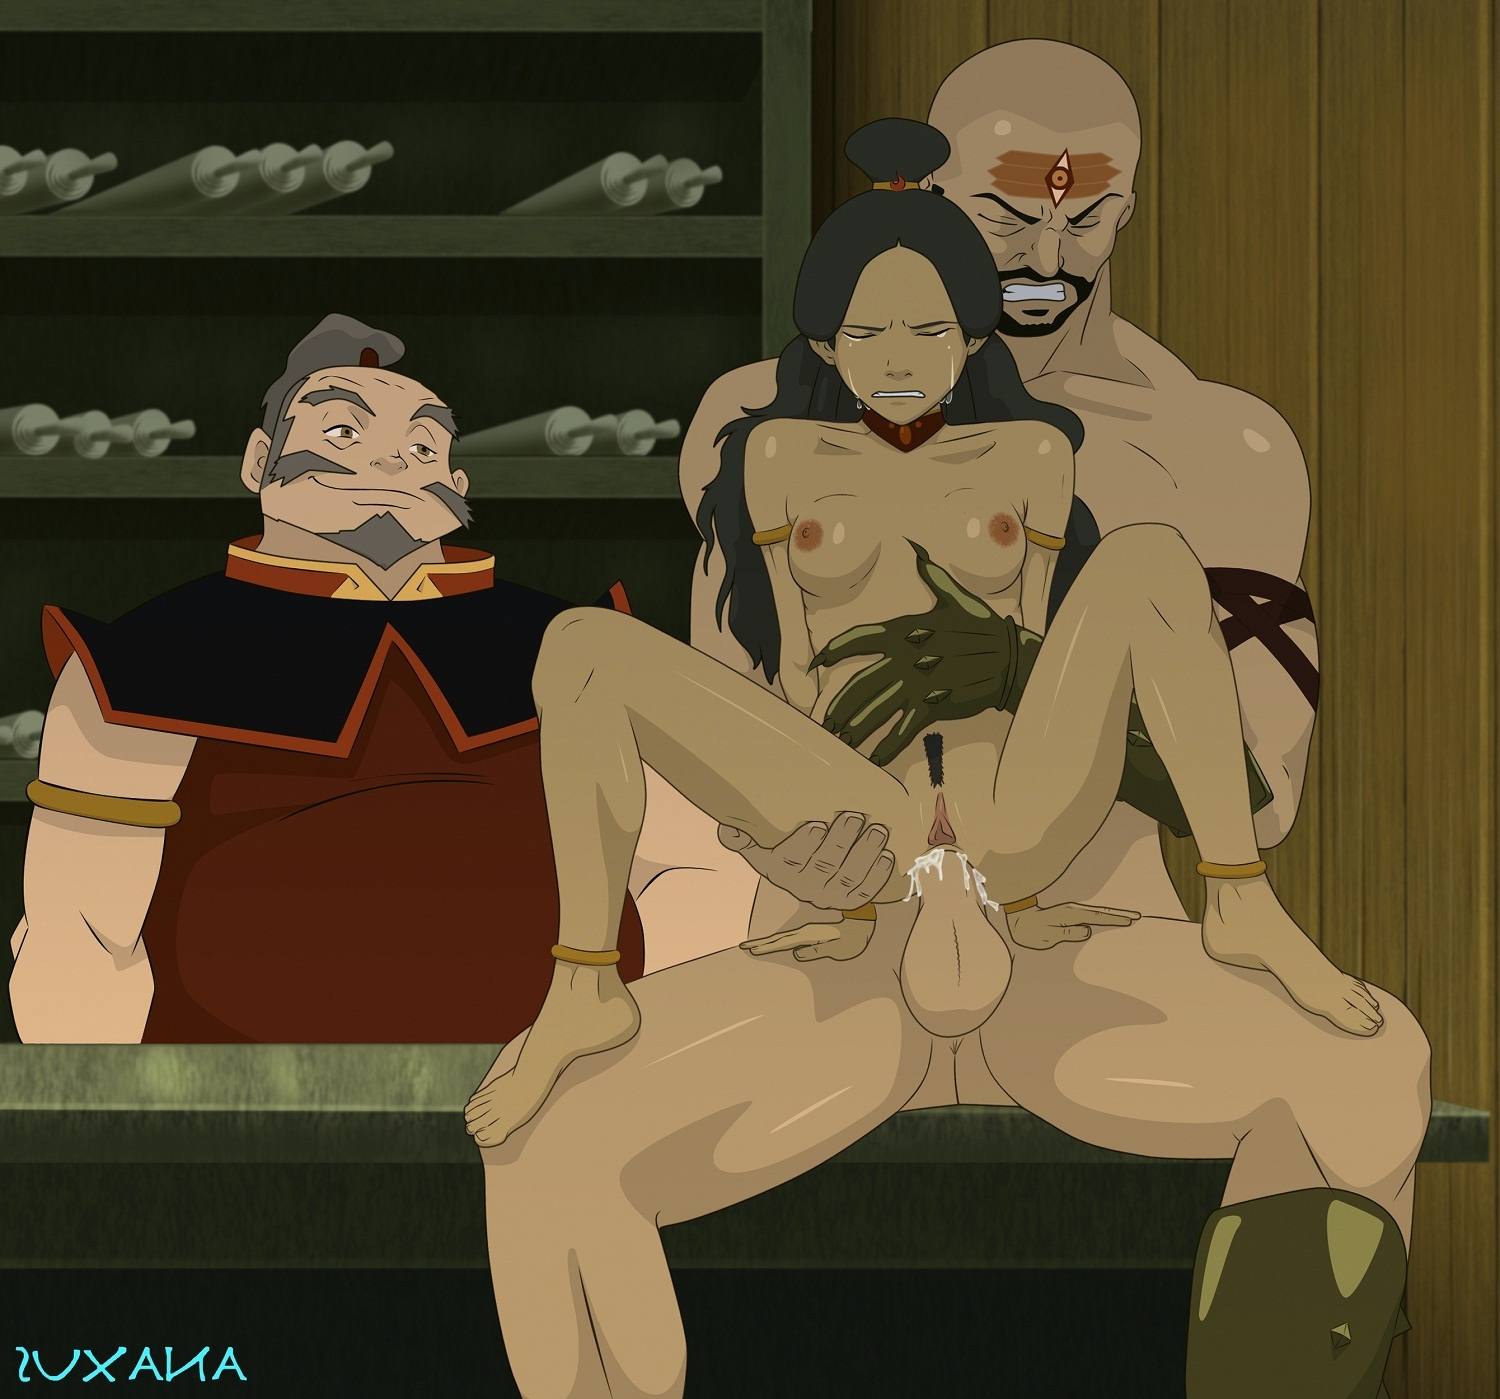 Avatar the last airbender katara and sokka something is